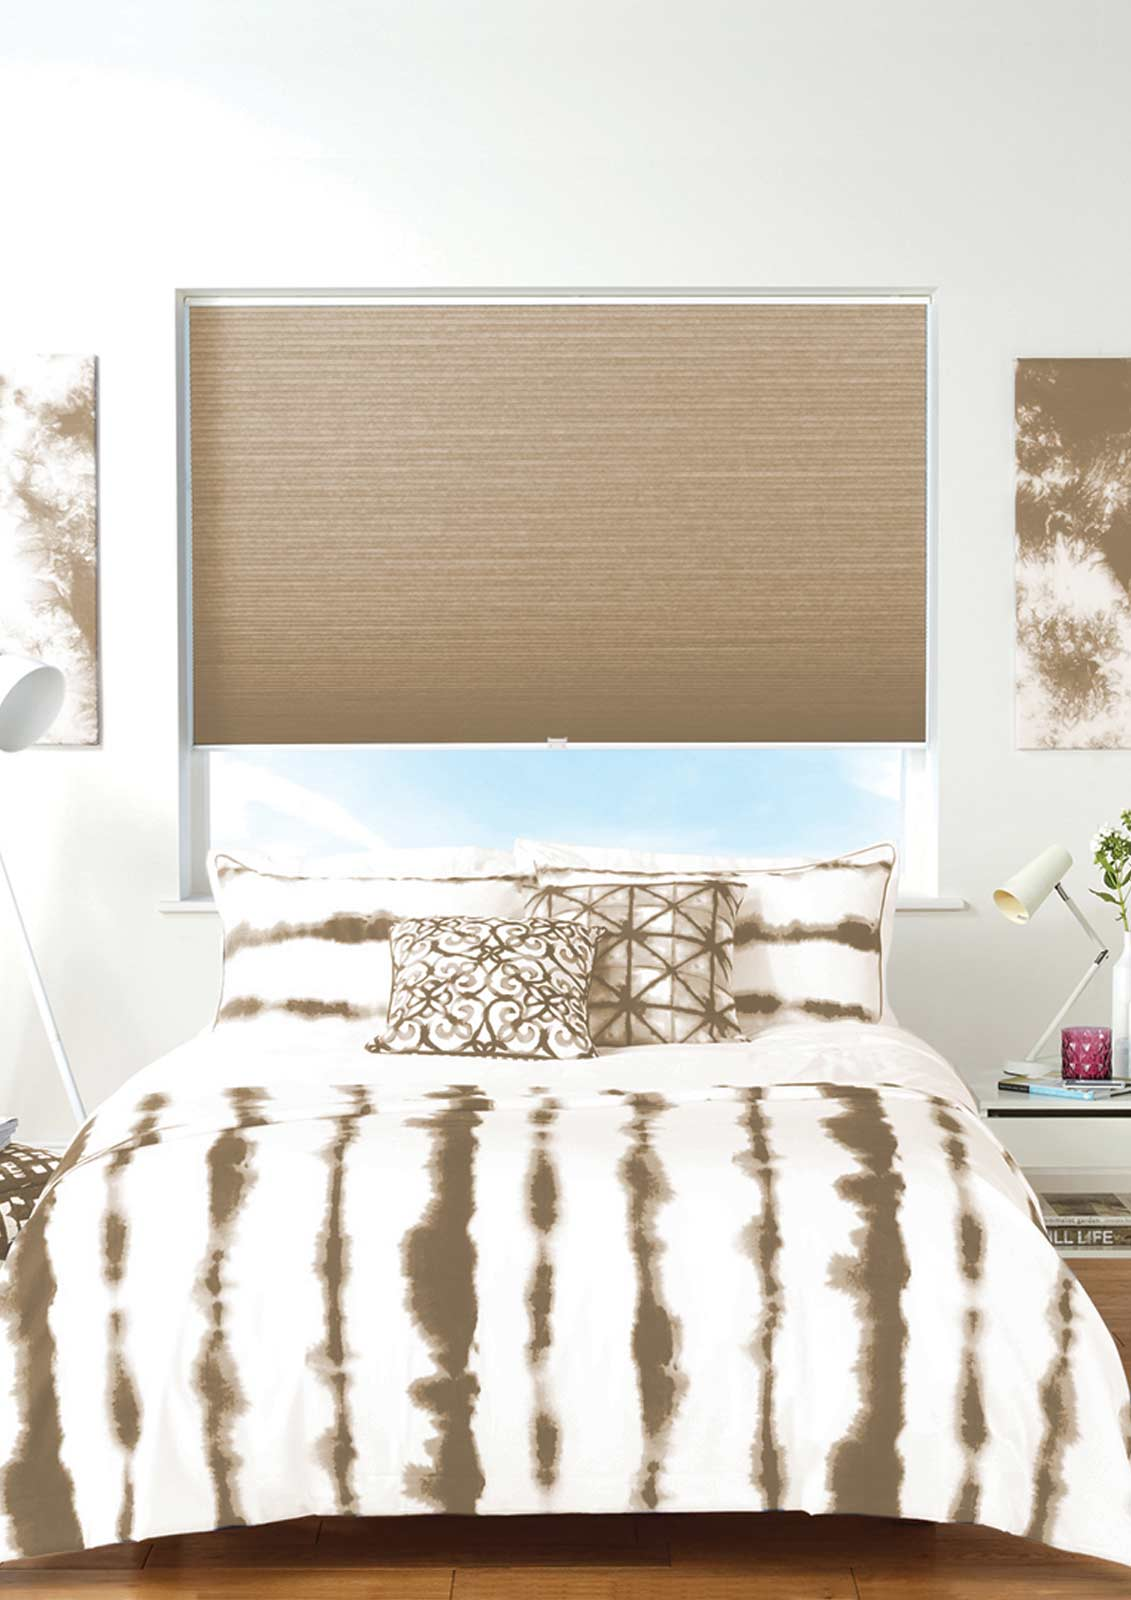 Honeycomb Blinds -  DABRY LINEN